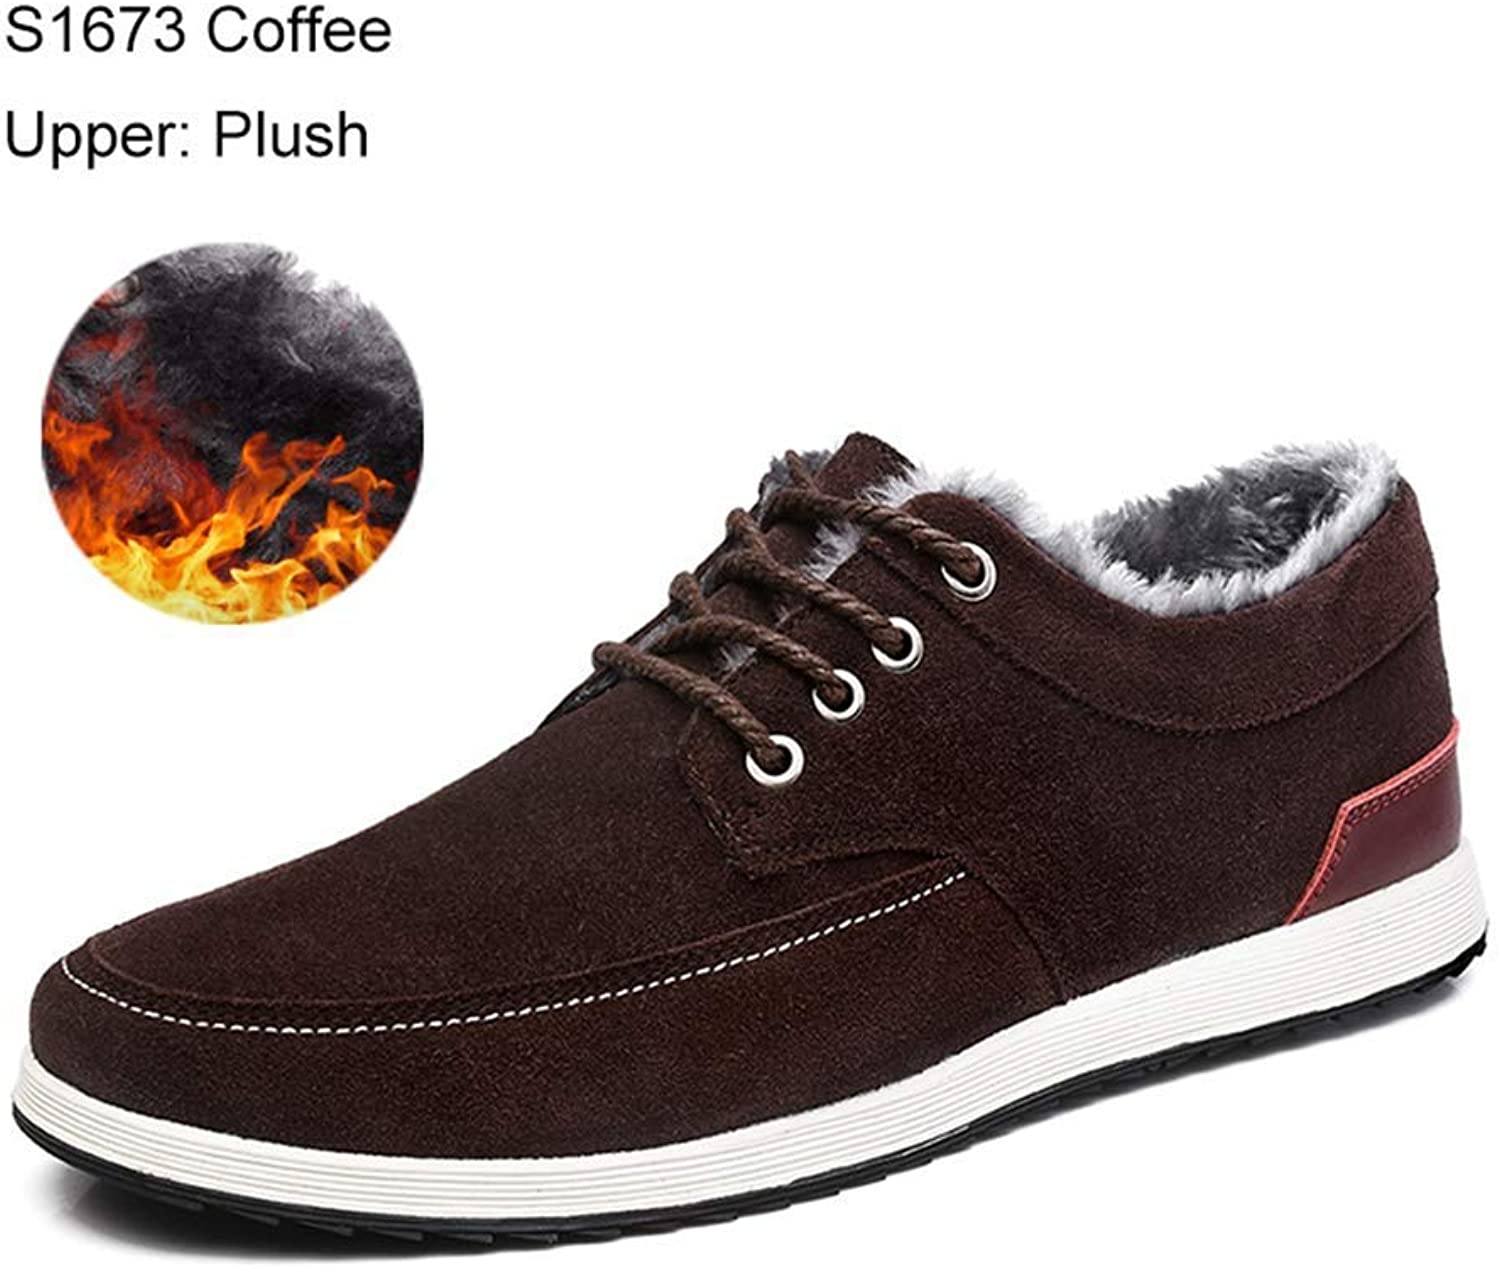 ZHRUI Men Leather Casual shoes Warm Winter Fashion Sneakers Male Suede Boat shoes (color   S1763 Coffee, Size   6.5 UK)